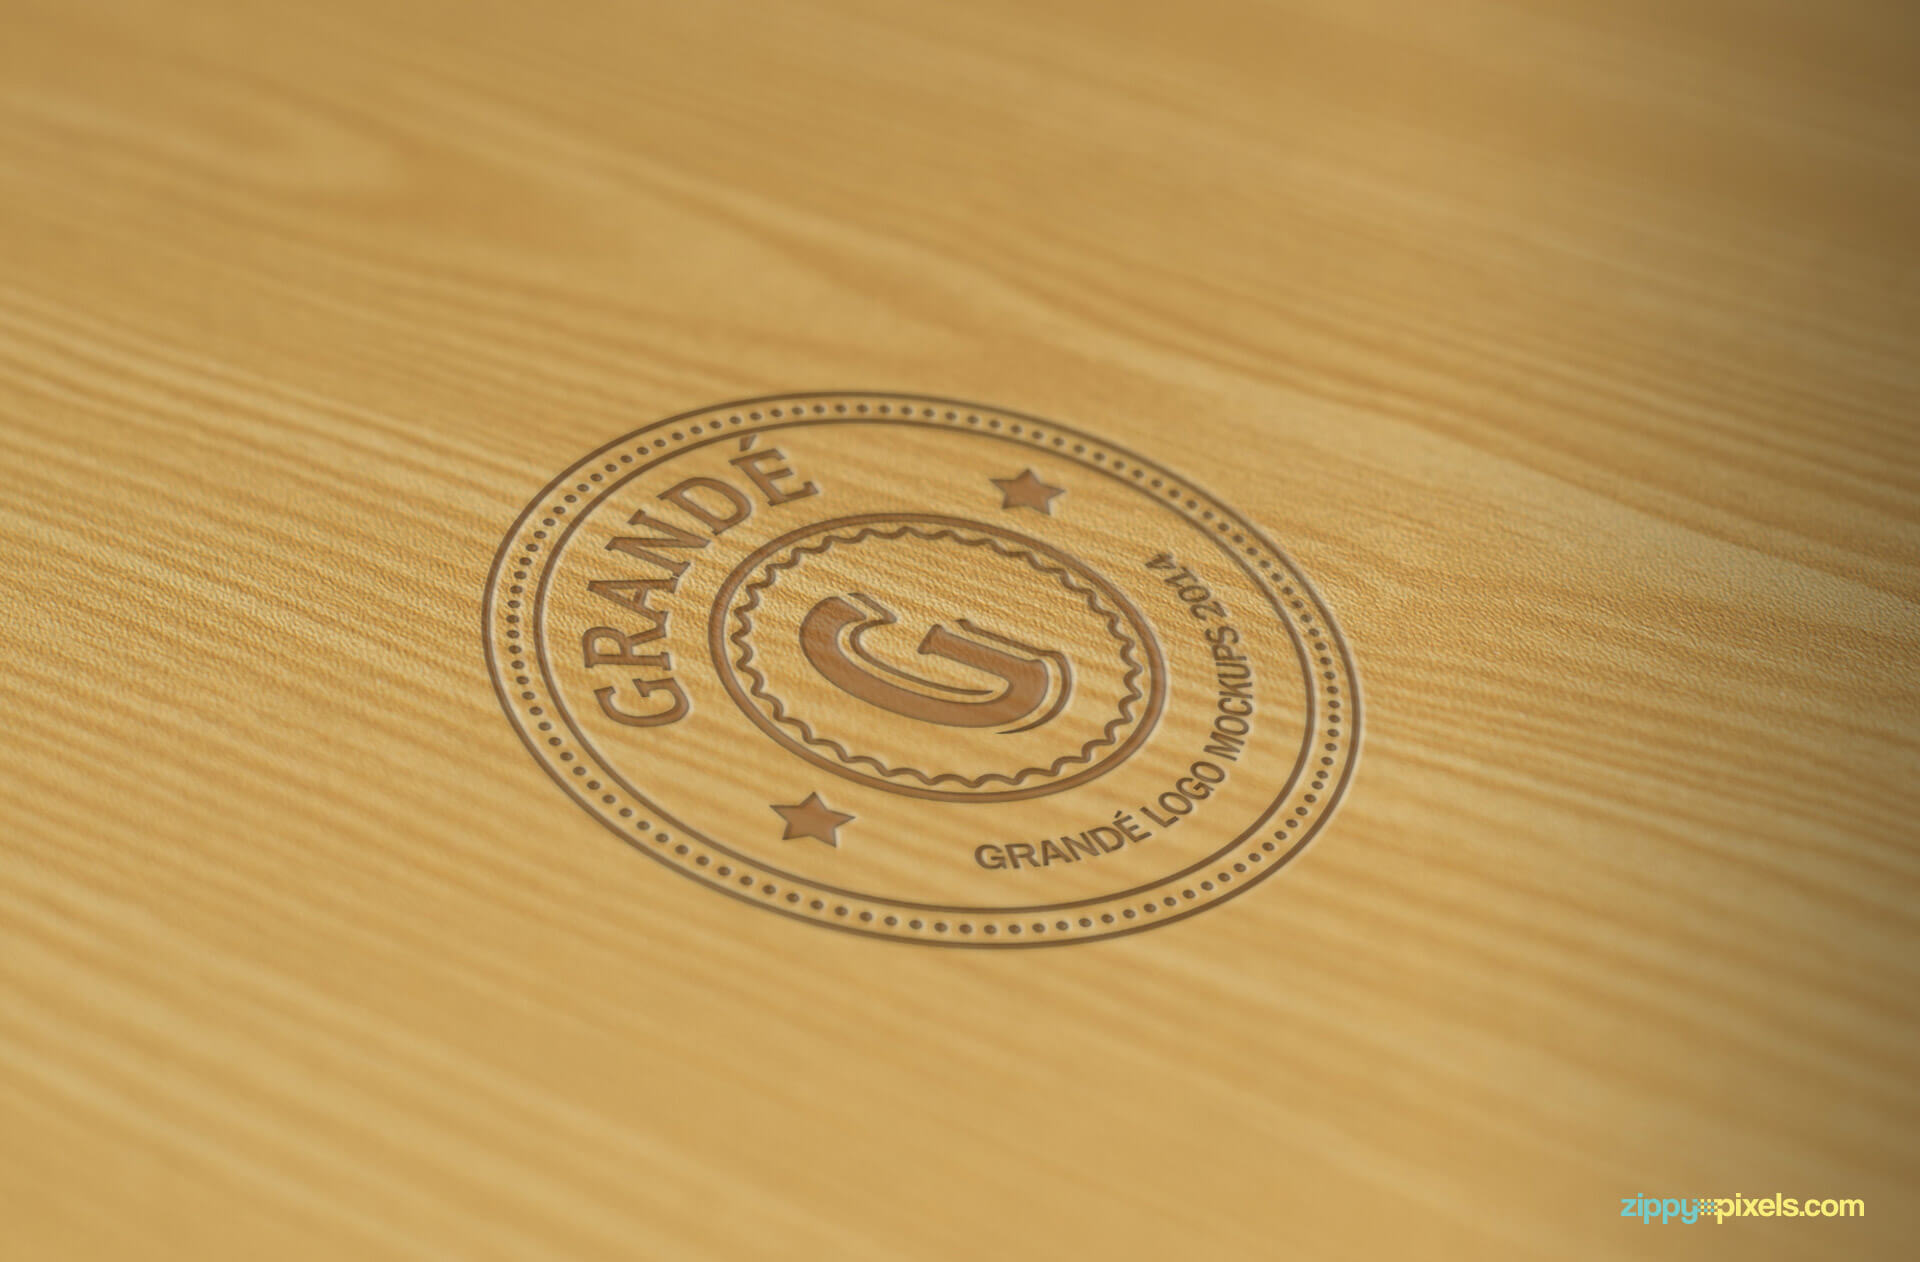 Stamped Logo Mockup on Wood Surface